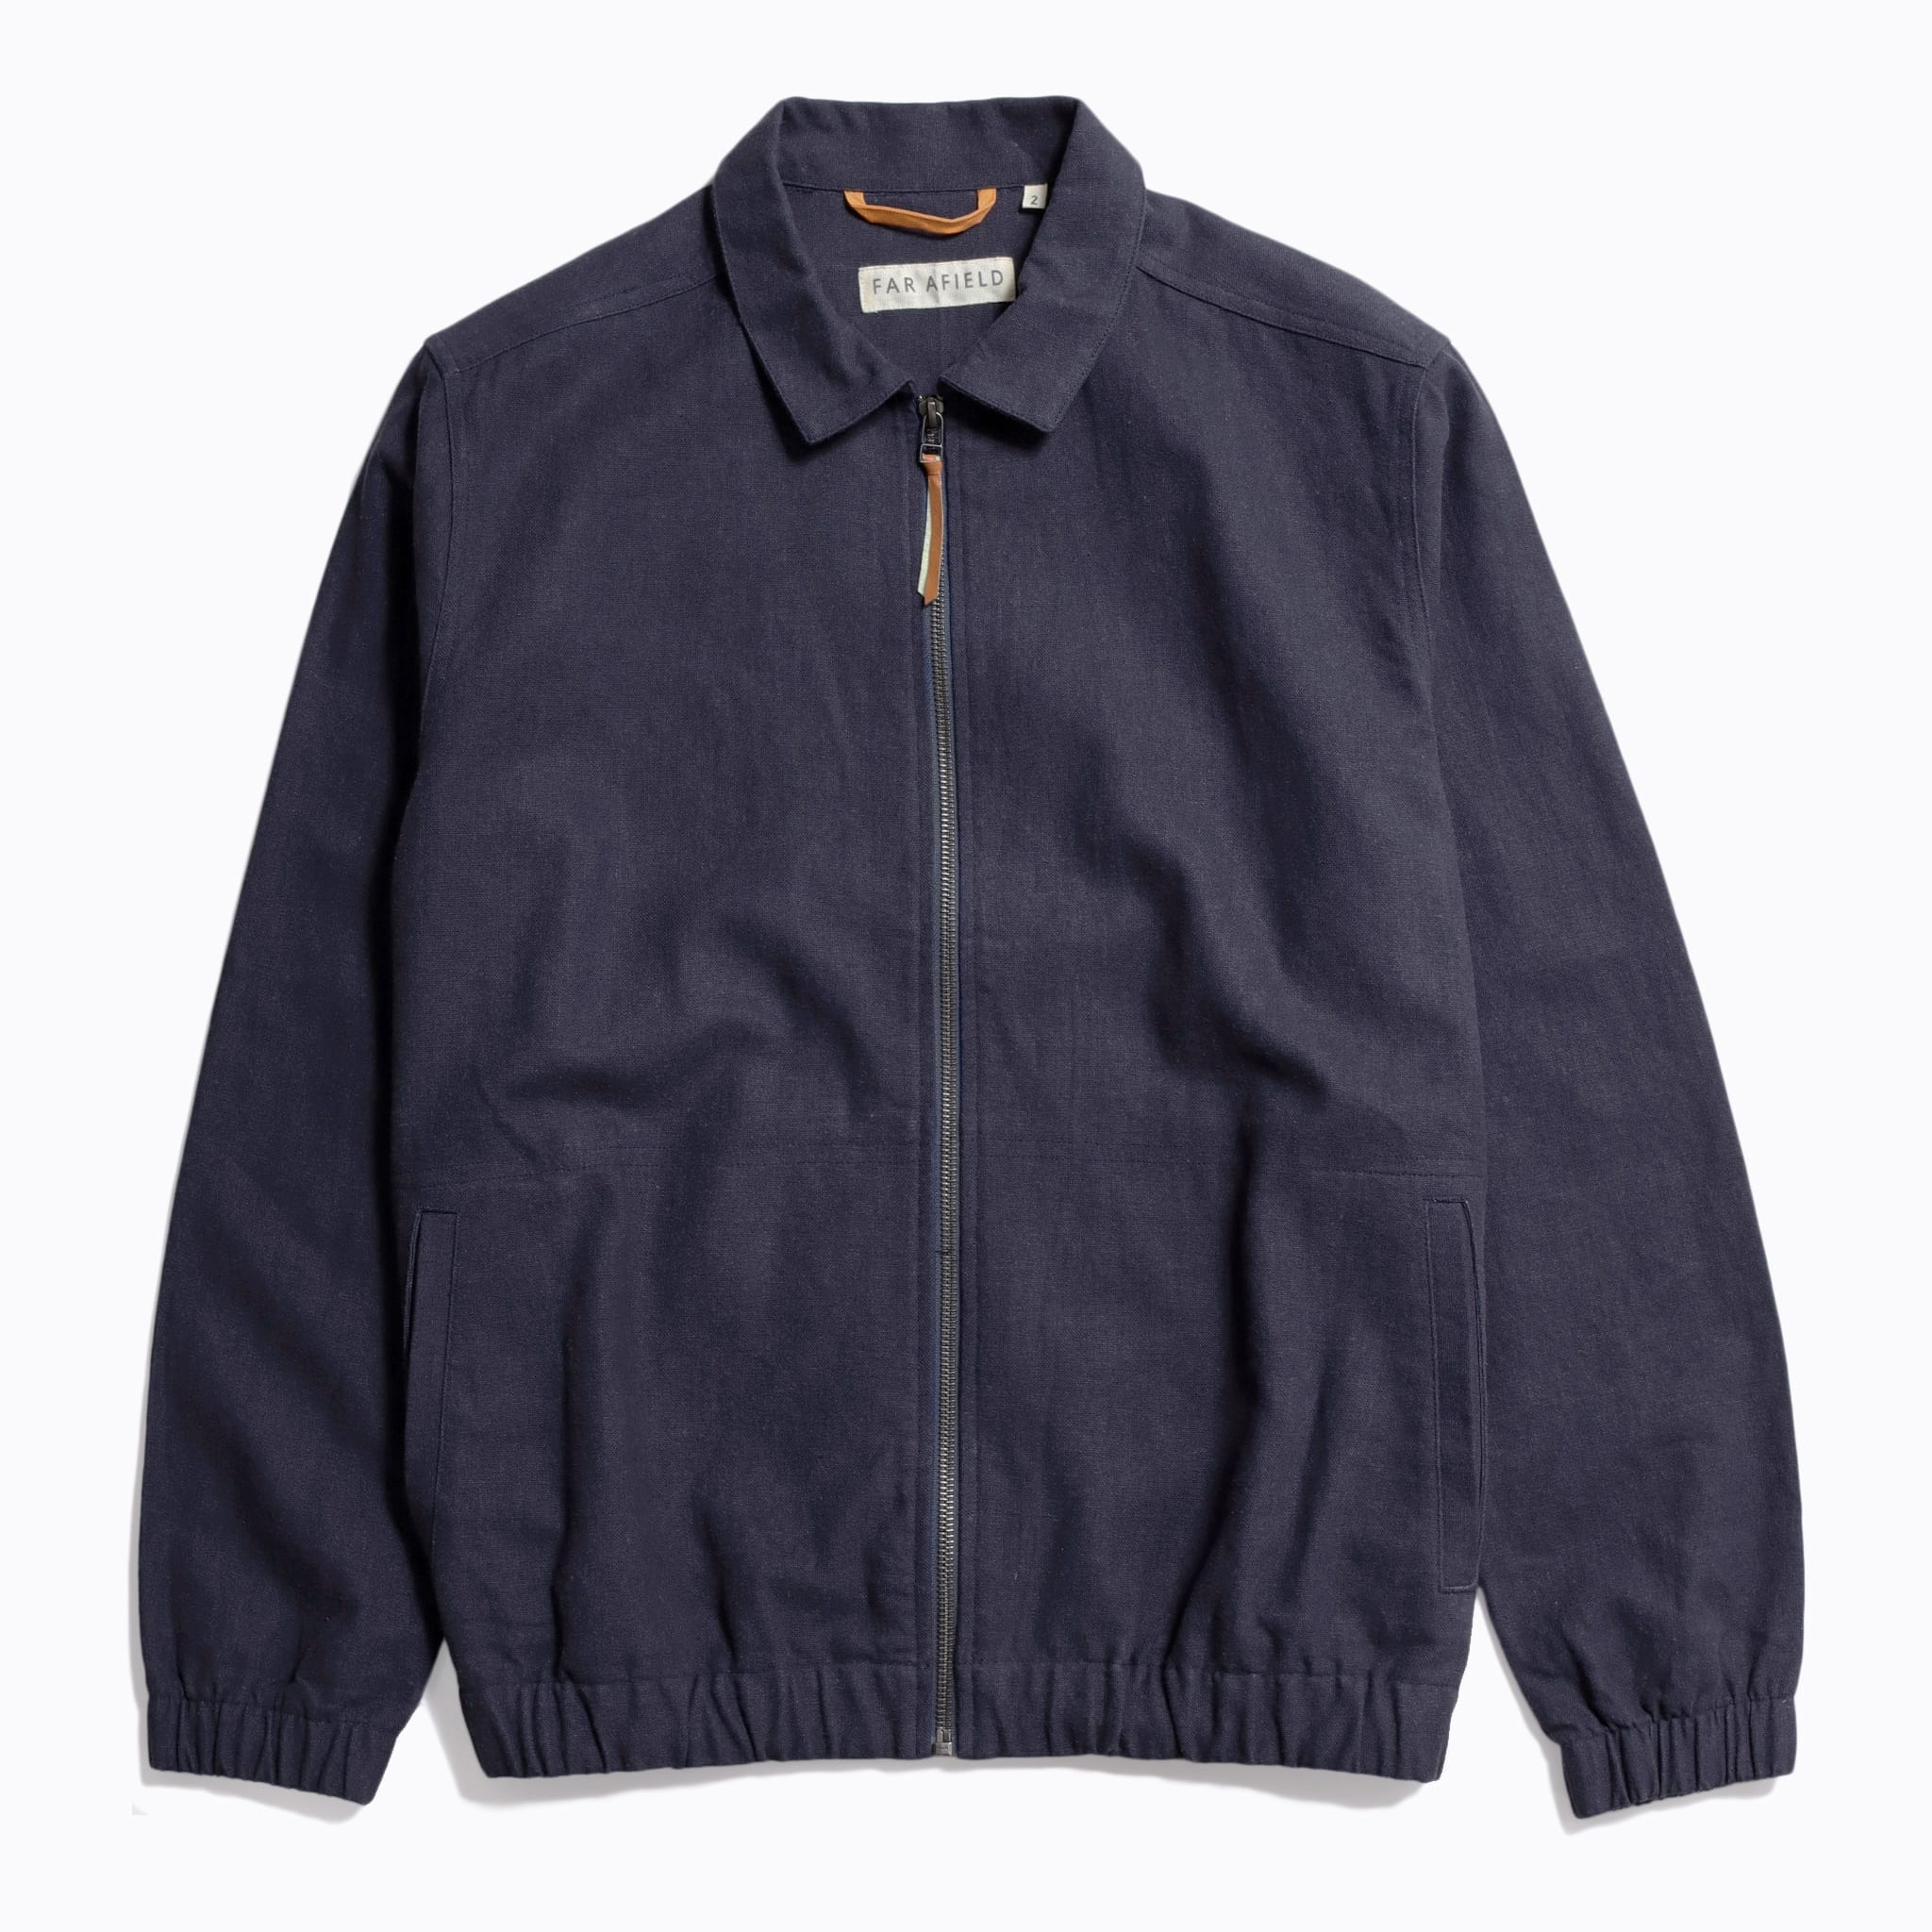 Far Afield Santana Jacket a Ensign Blue Linen Fabric Lightweight Zip Retro Inspired